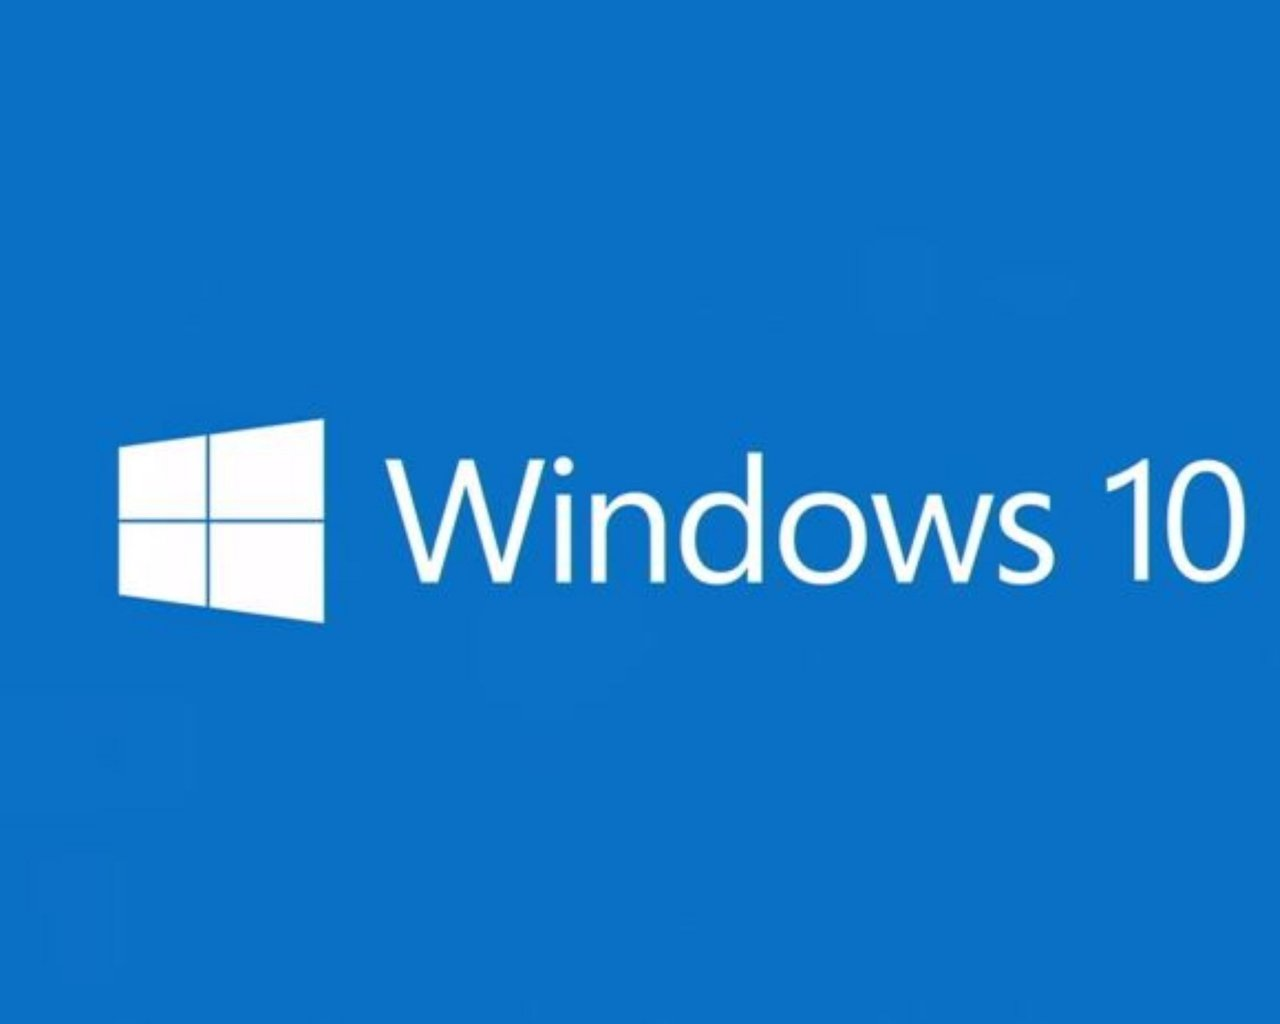 1280x1024 Wallpaper windows 10 technical preview windows 10 logo 1280x1024